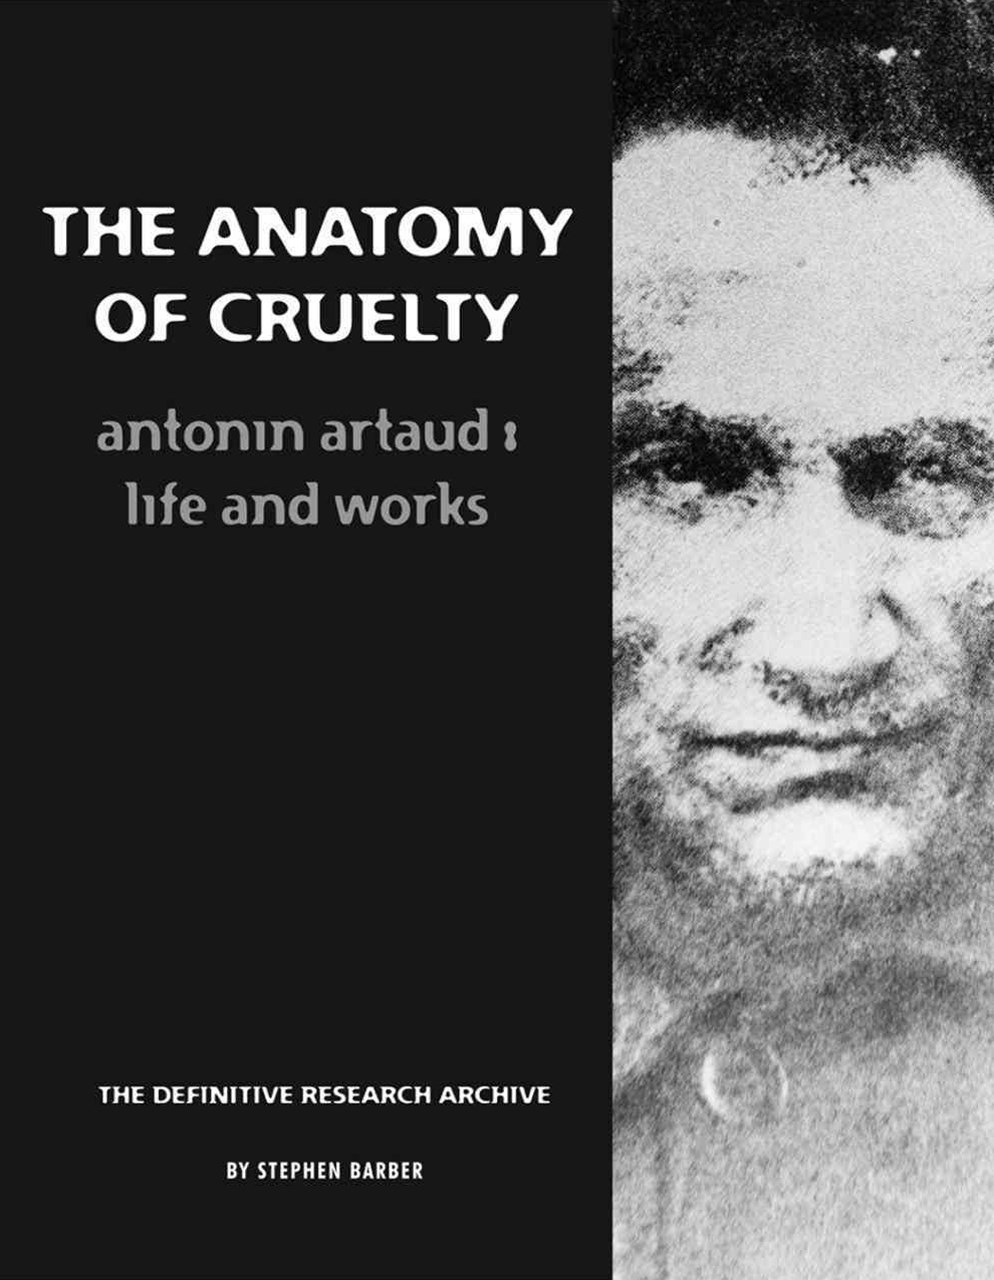 The Anatomy of Cruelty